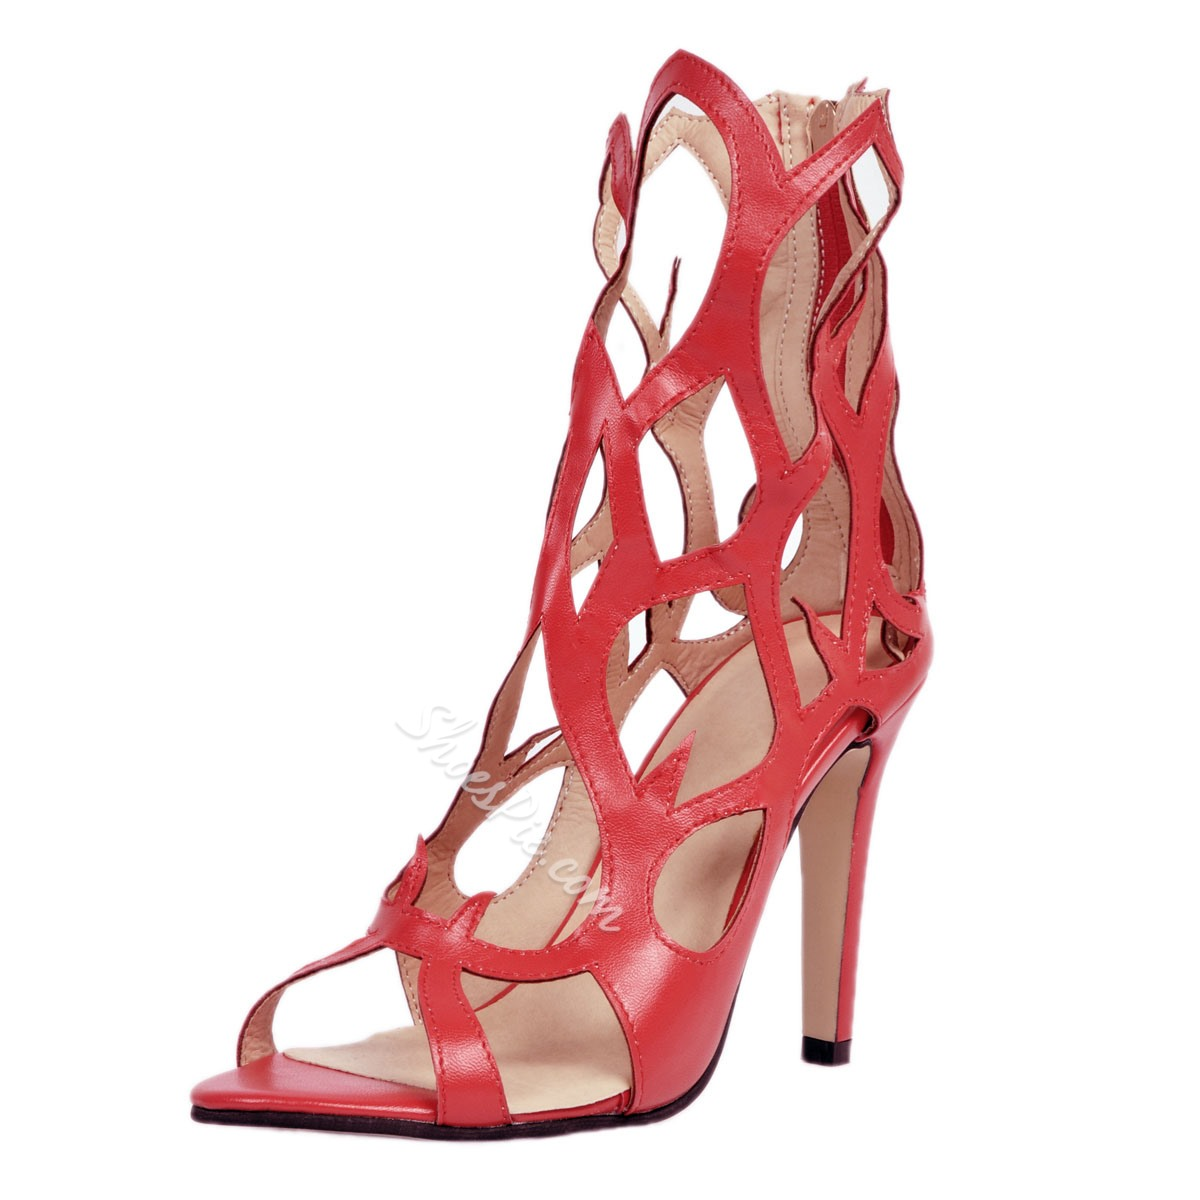 Shoespie Hollow Summer Zipper Stiletto Heels Gladiator Sandals